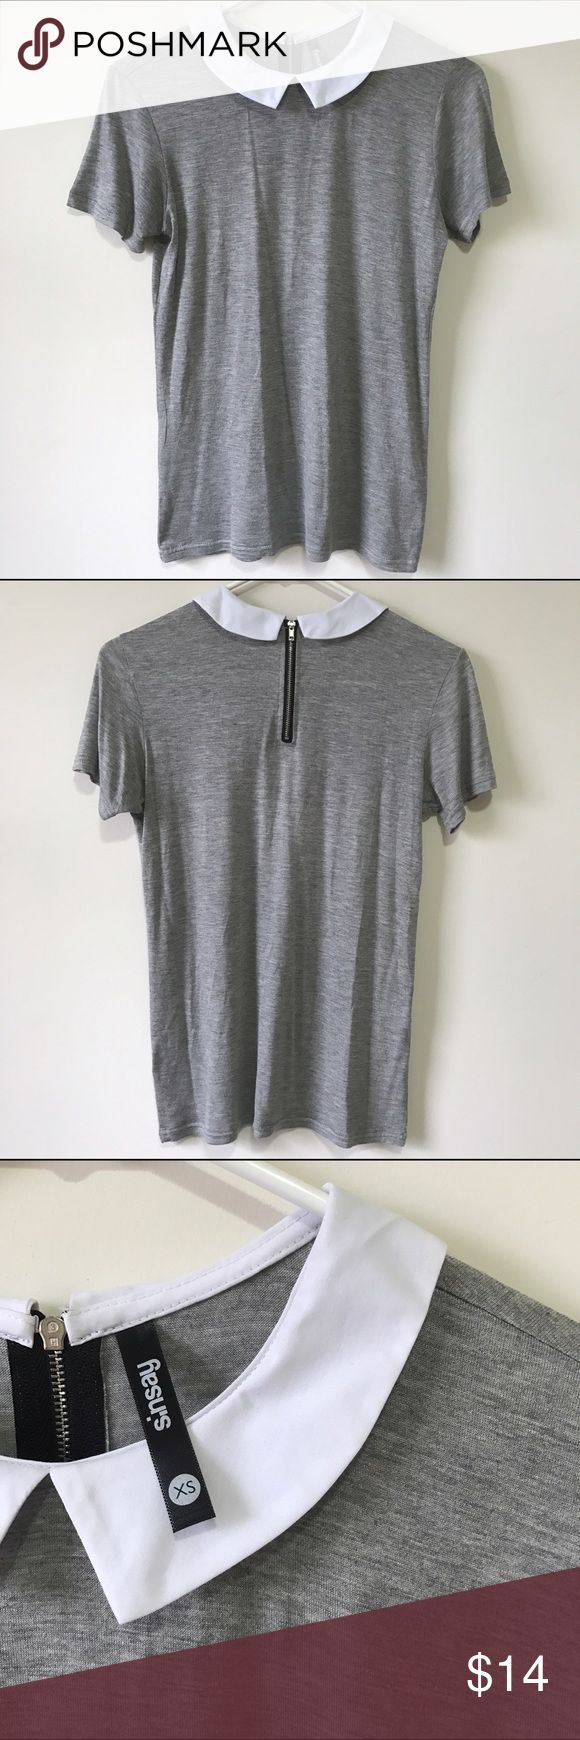 Gray collared tee Gray collared tee. Very soft and stretchy fabric. Zipper on back. Only wore once. Very great condition. Sinsay Tops Tees - Short Sleeve